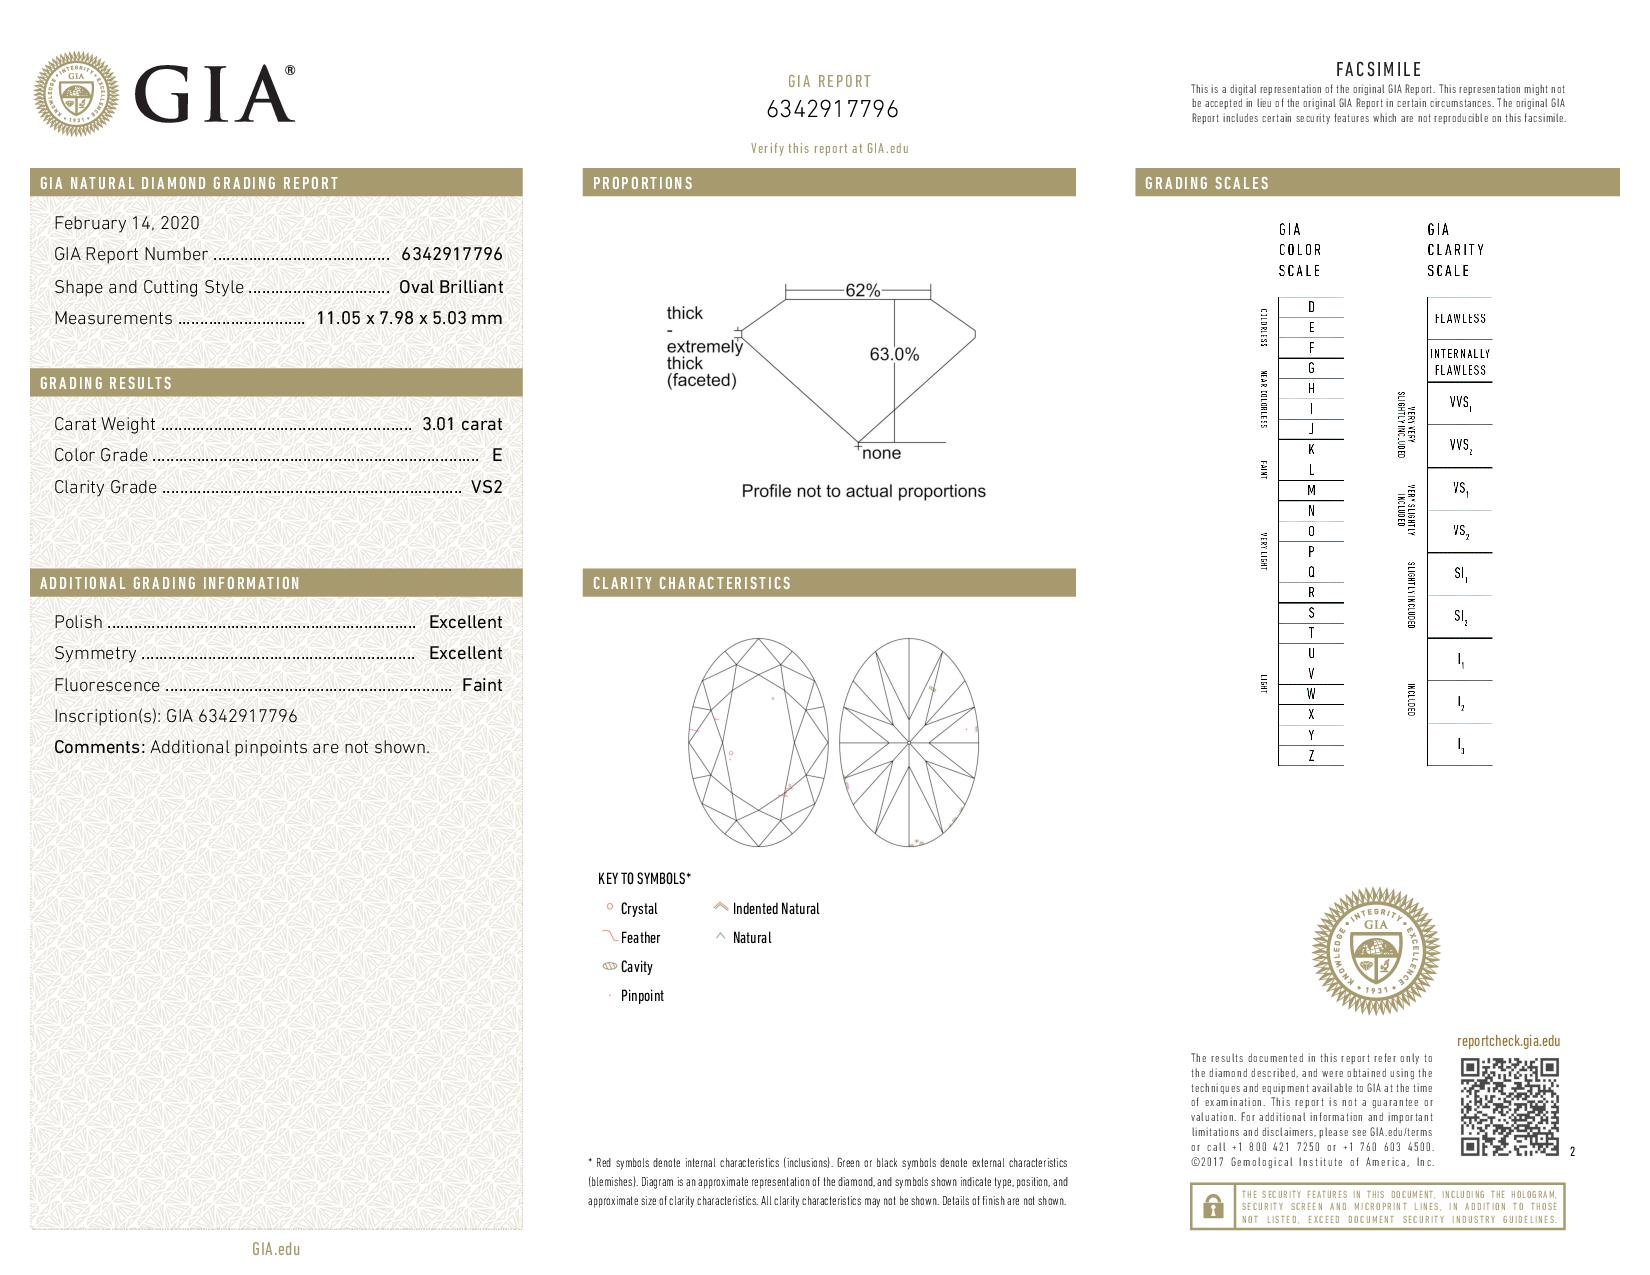 This is a 3.01 carat oval shape, E color, VS2 clarity natural diamond accompanied by a GIA grading report.